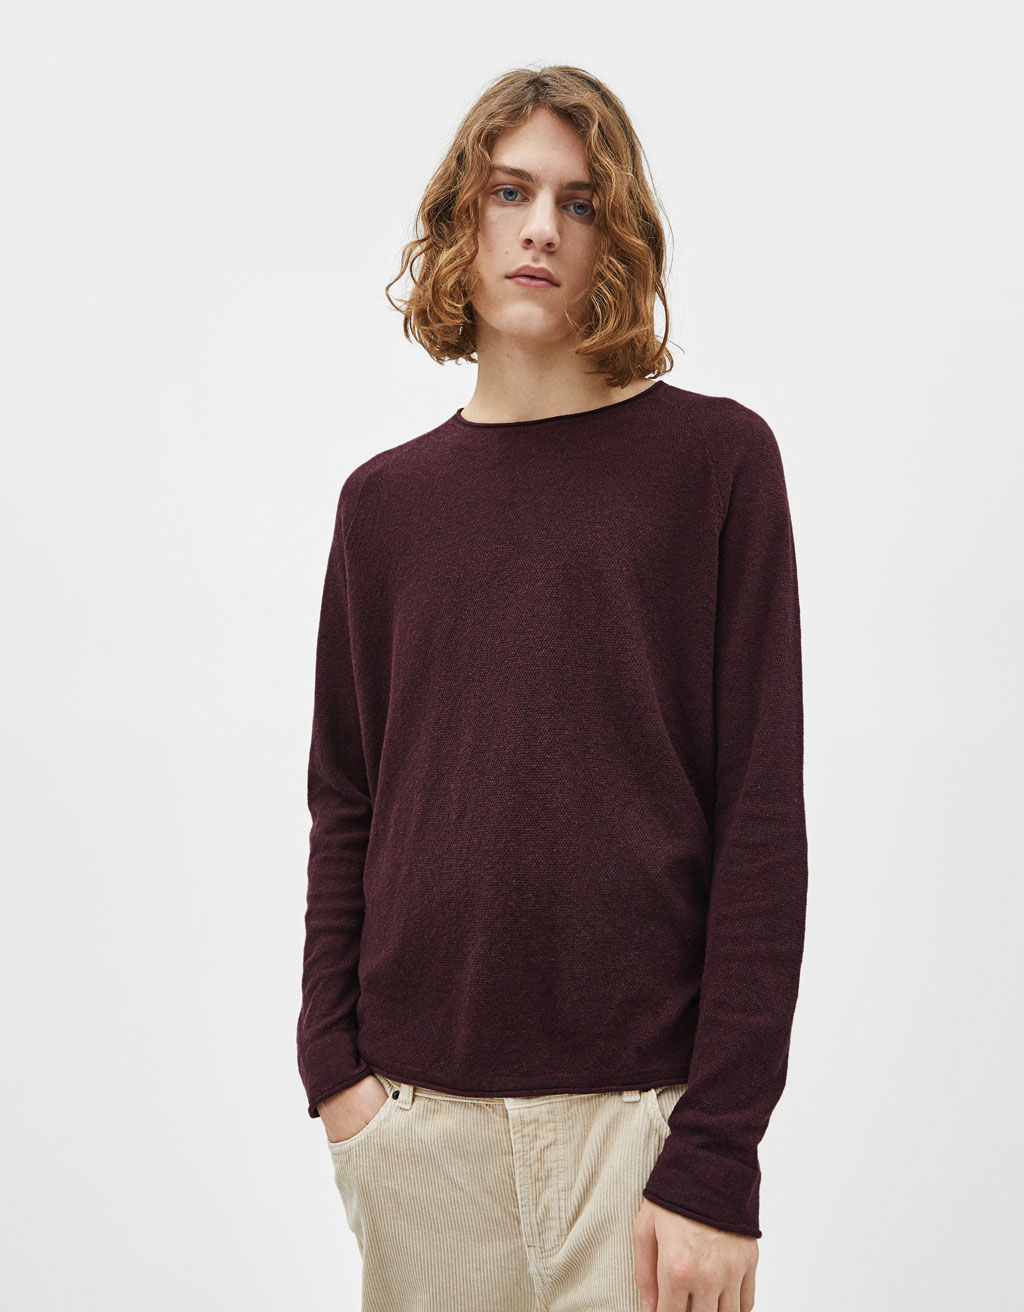 Fintstrikket sweater